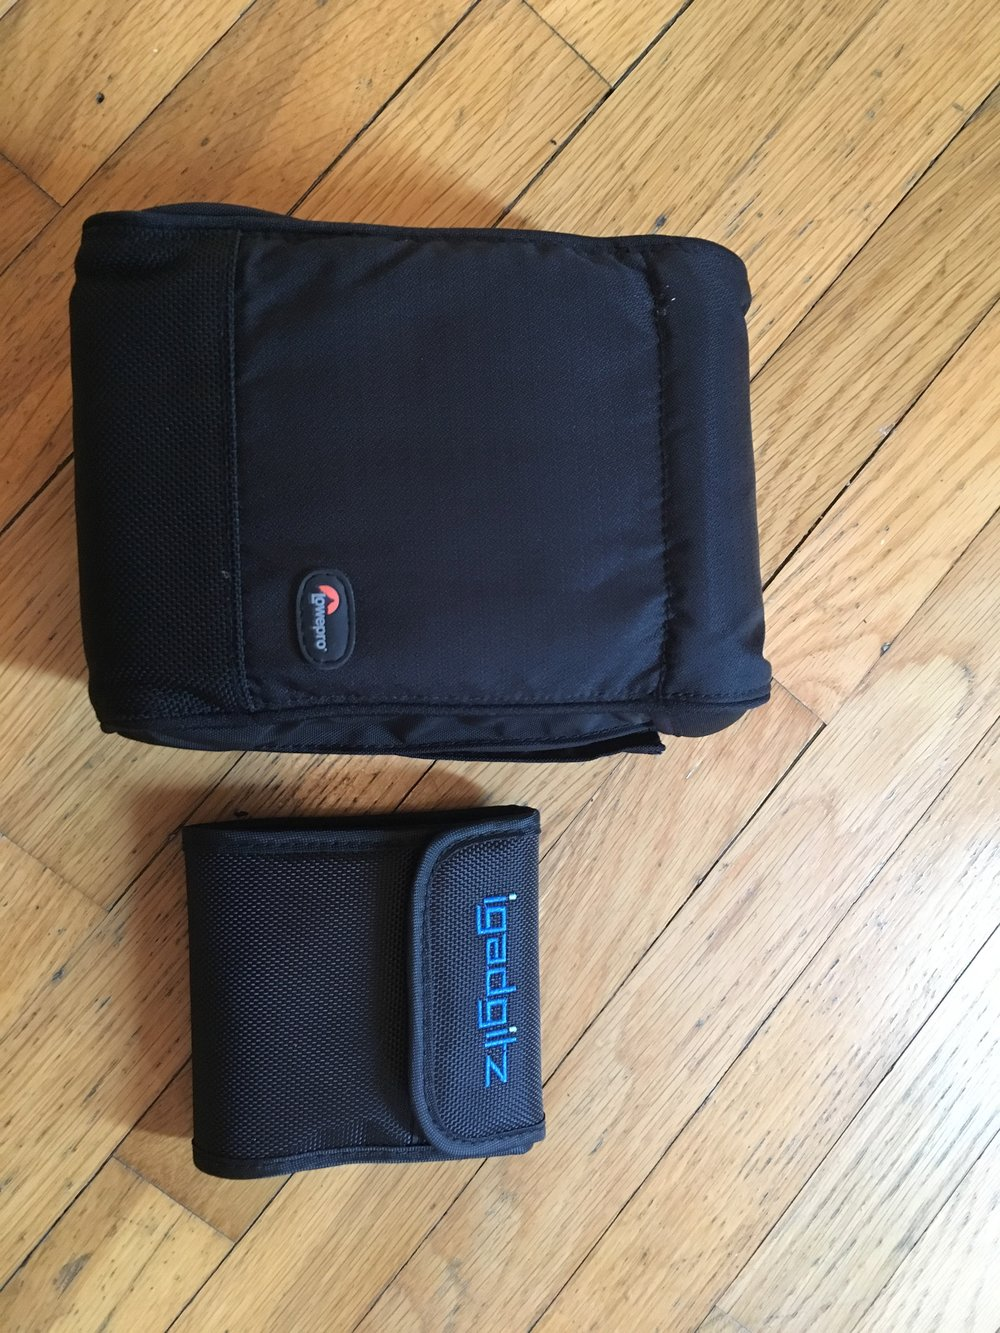 The iGadgitz compared to the Lee Soft-Case